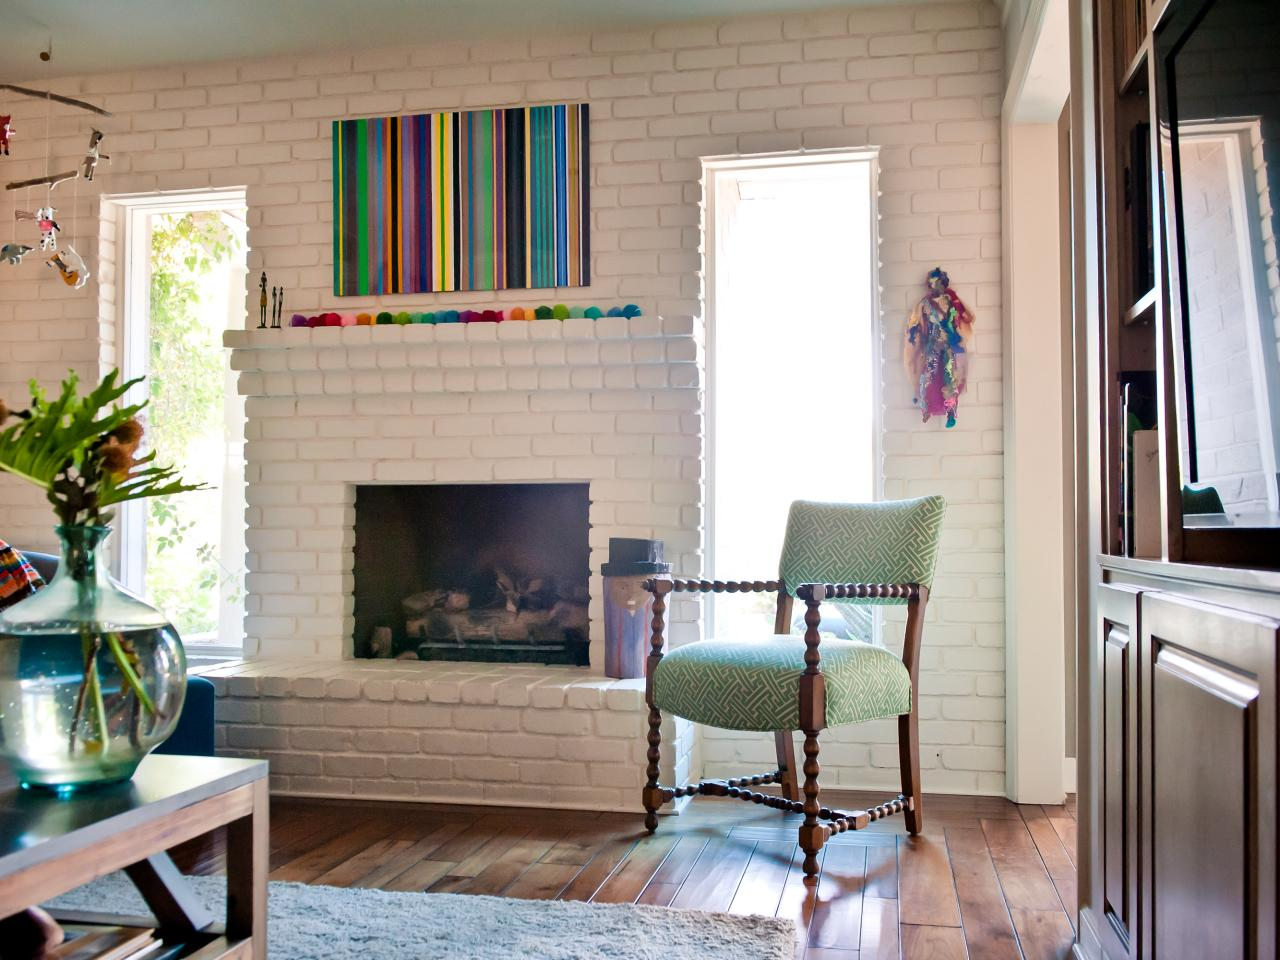 Design Ideas For Family Room With Fireplace 15 Ideas For Decorating Your Mantel Year Round Hgtv S Decorating